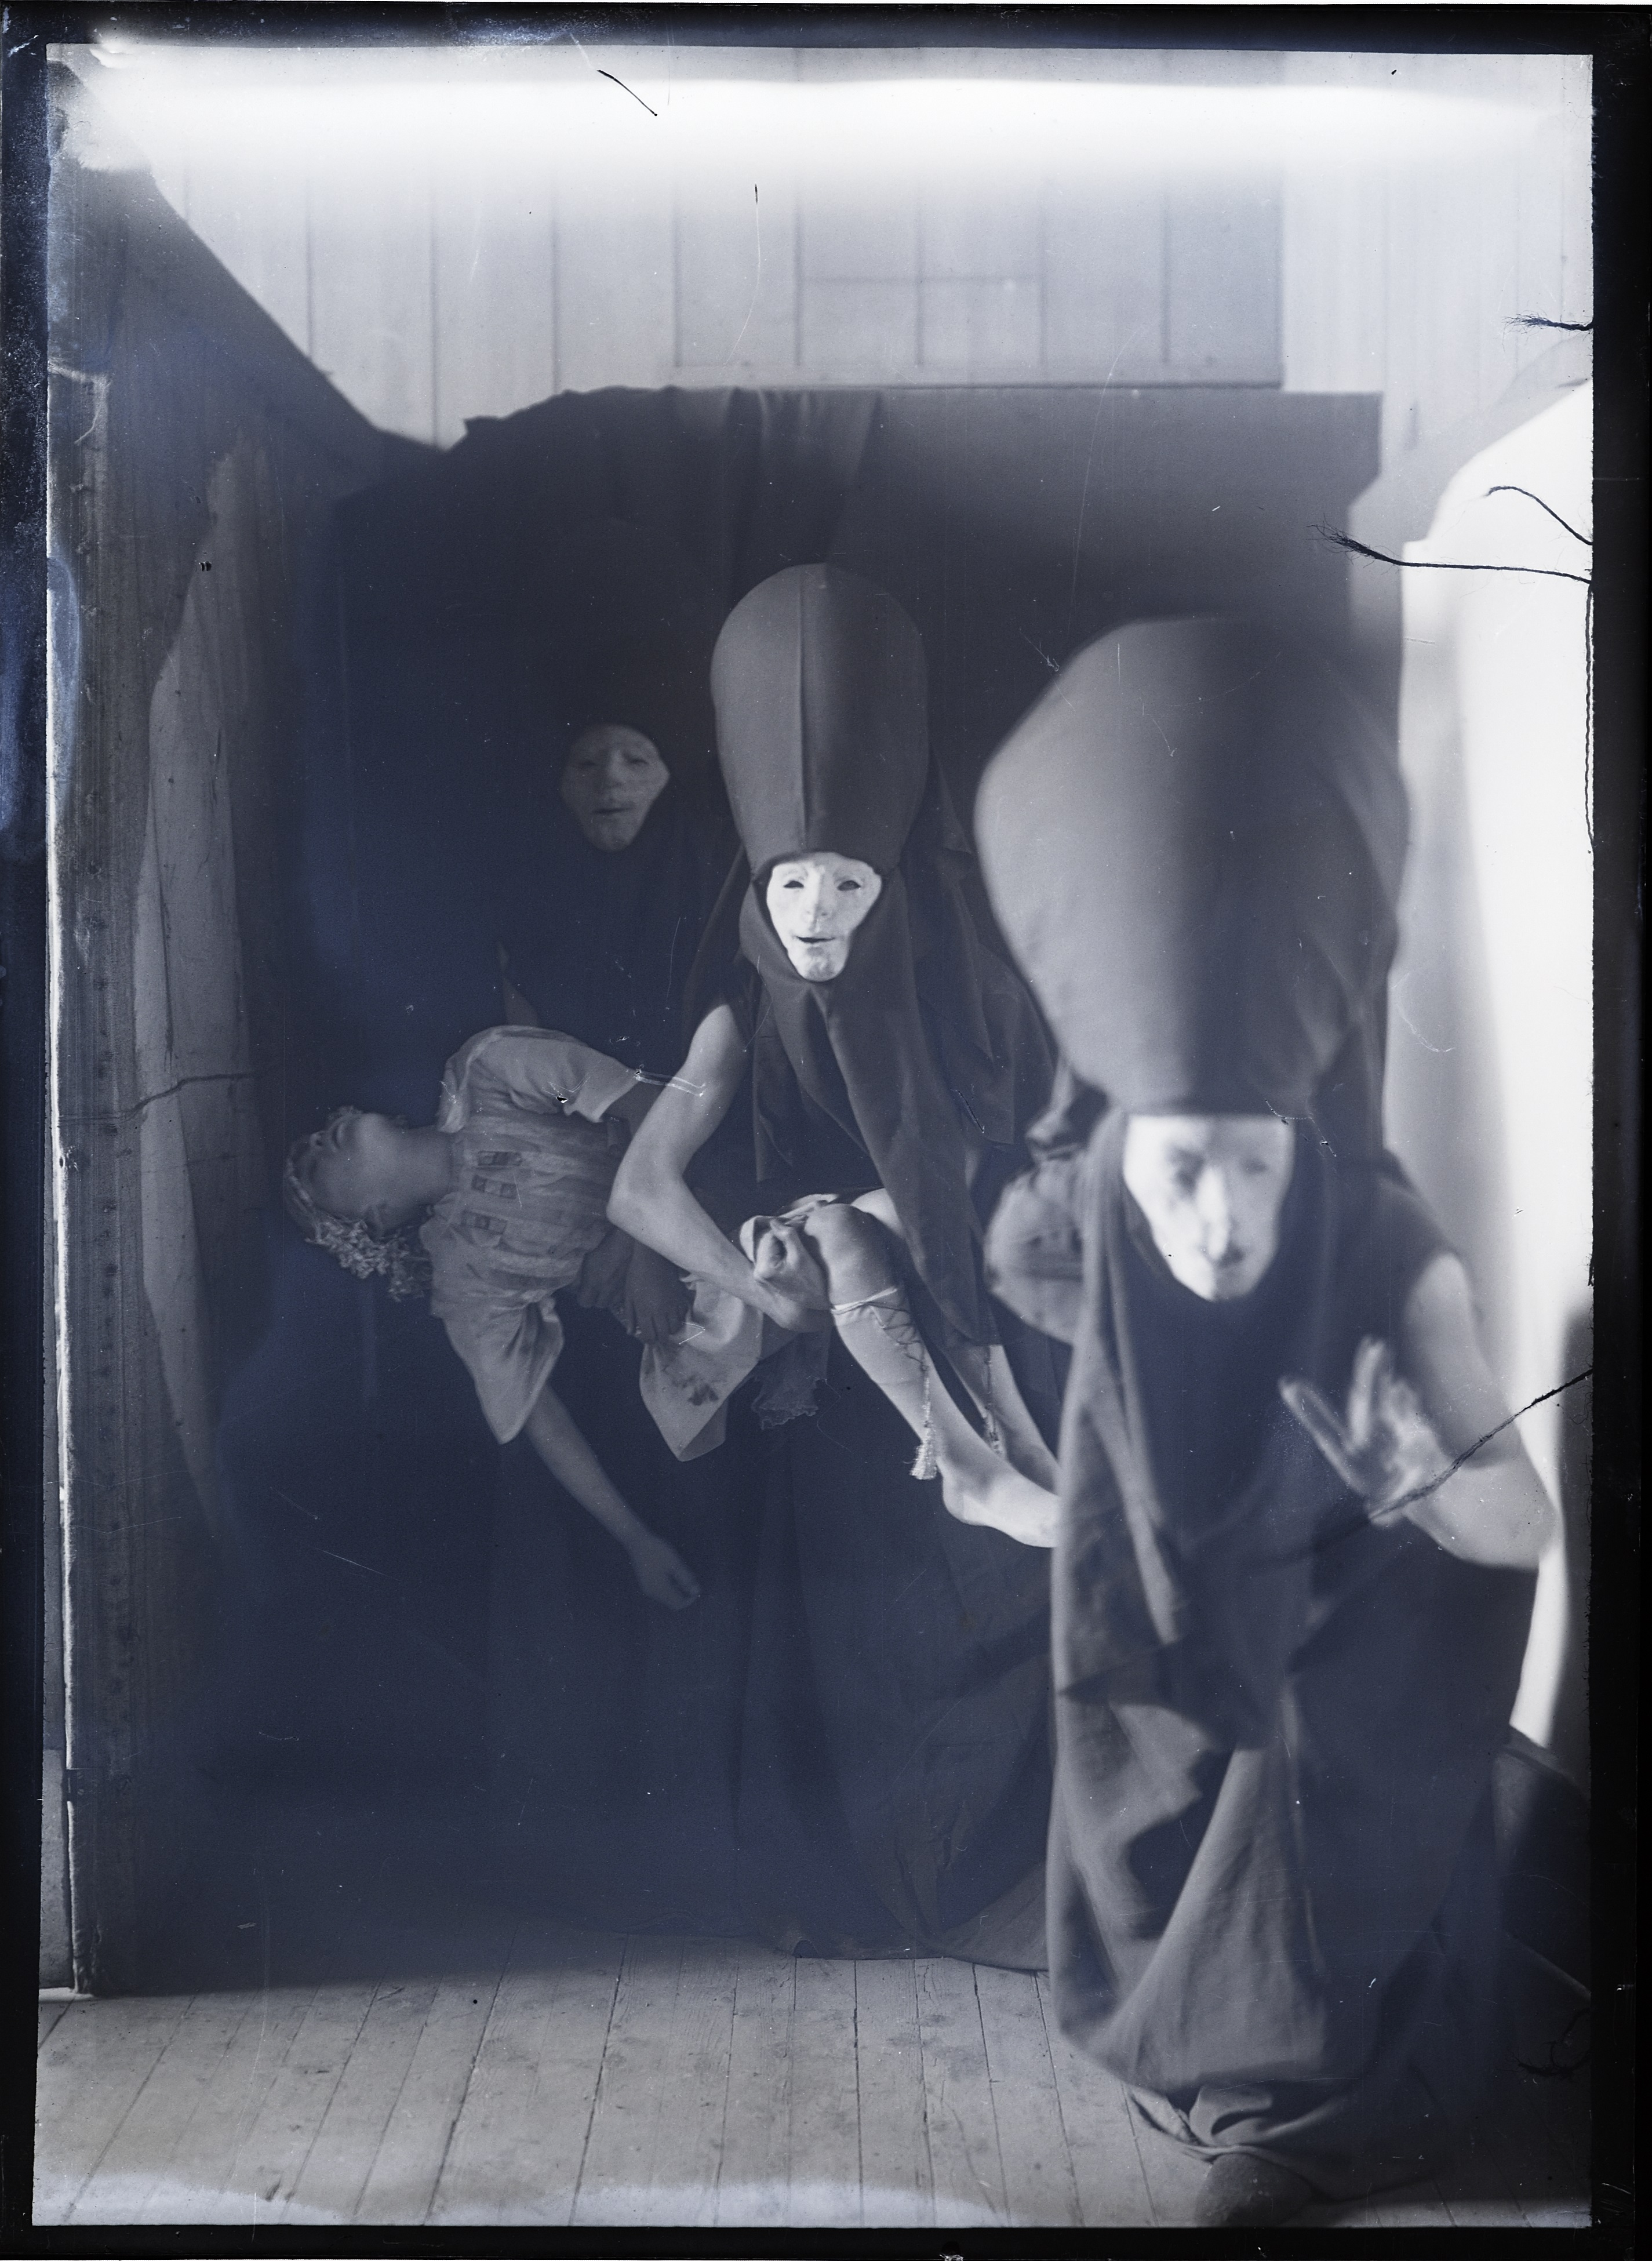 Glasgow School of Art glass plate negative showing students in costume, early 1900s